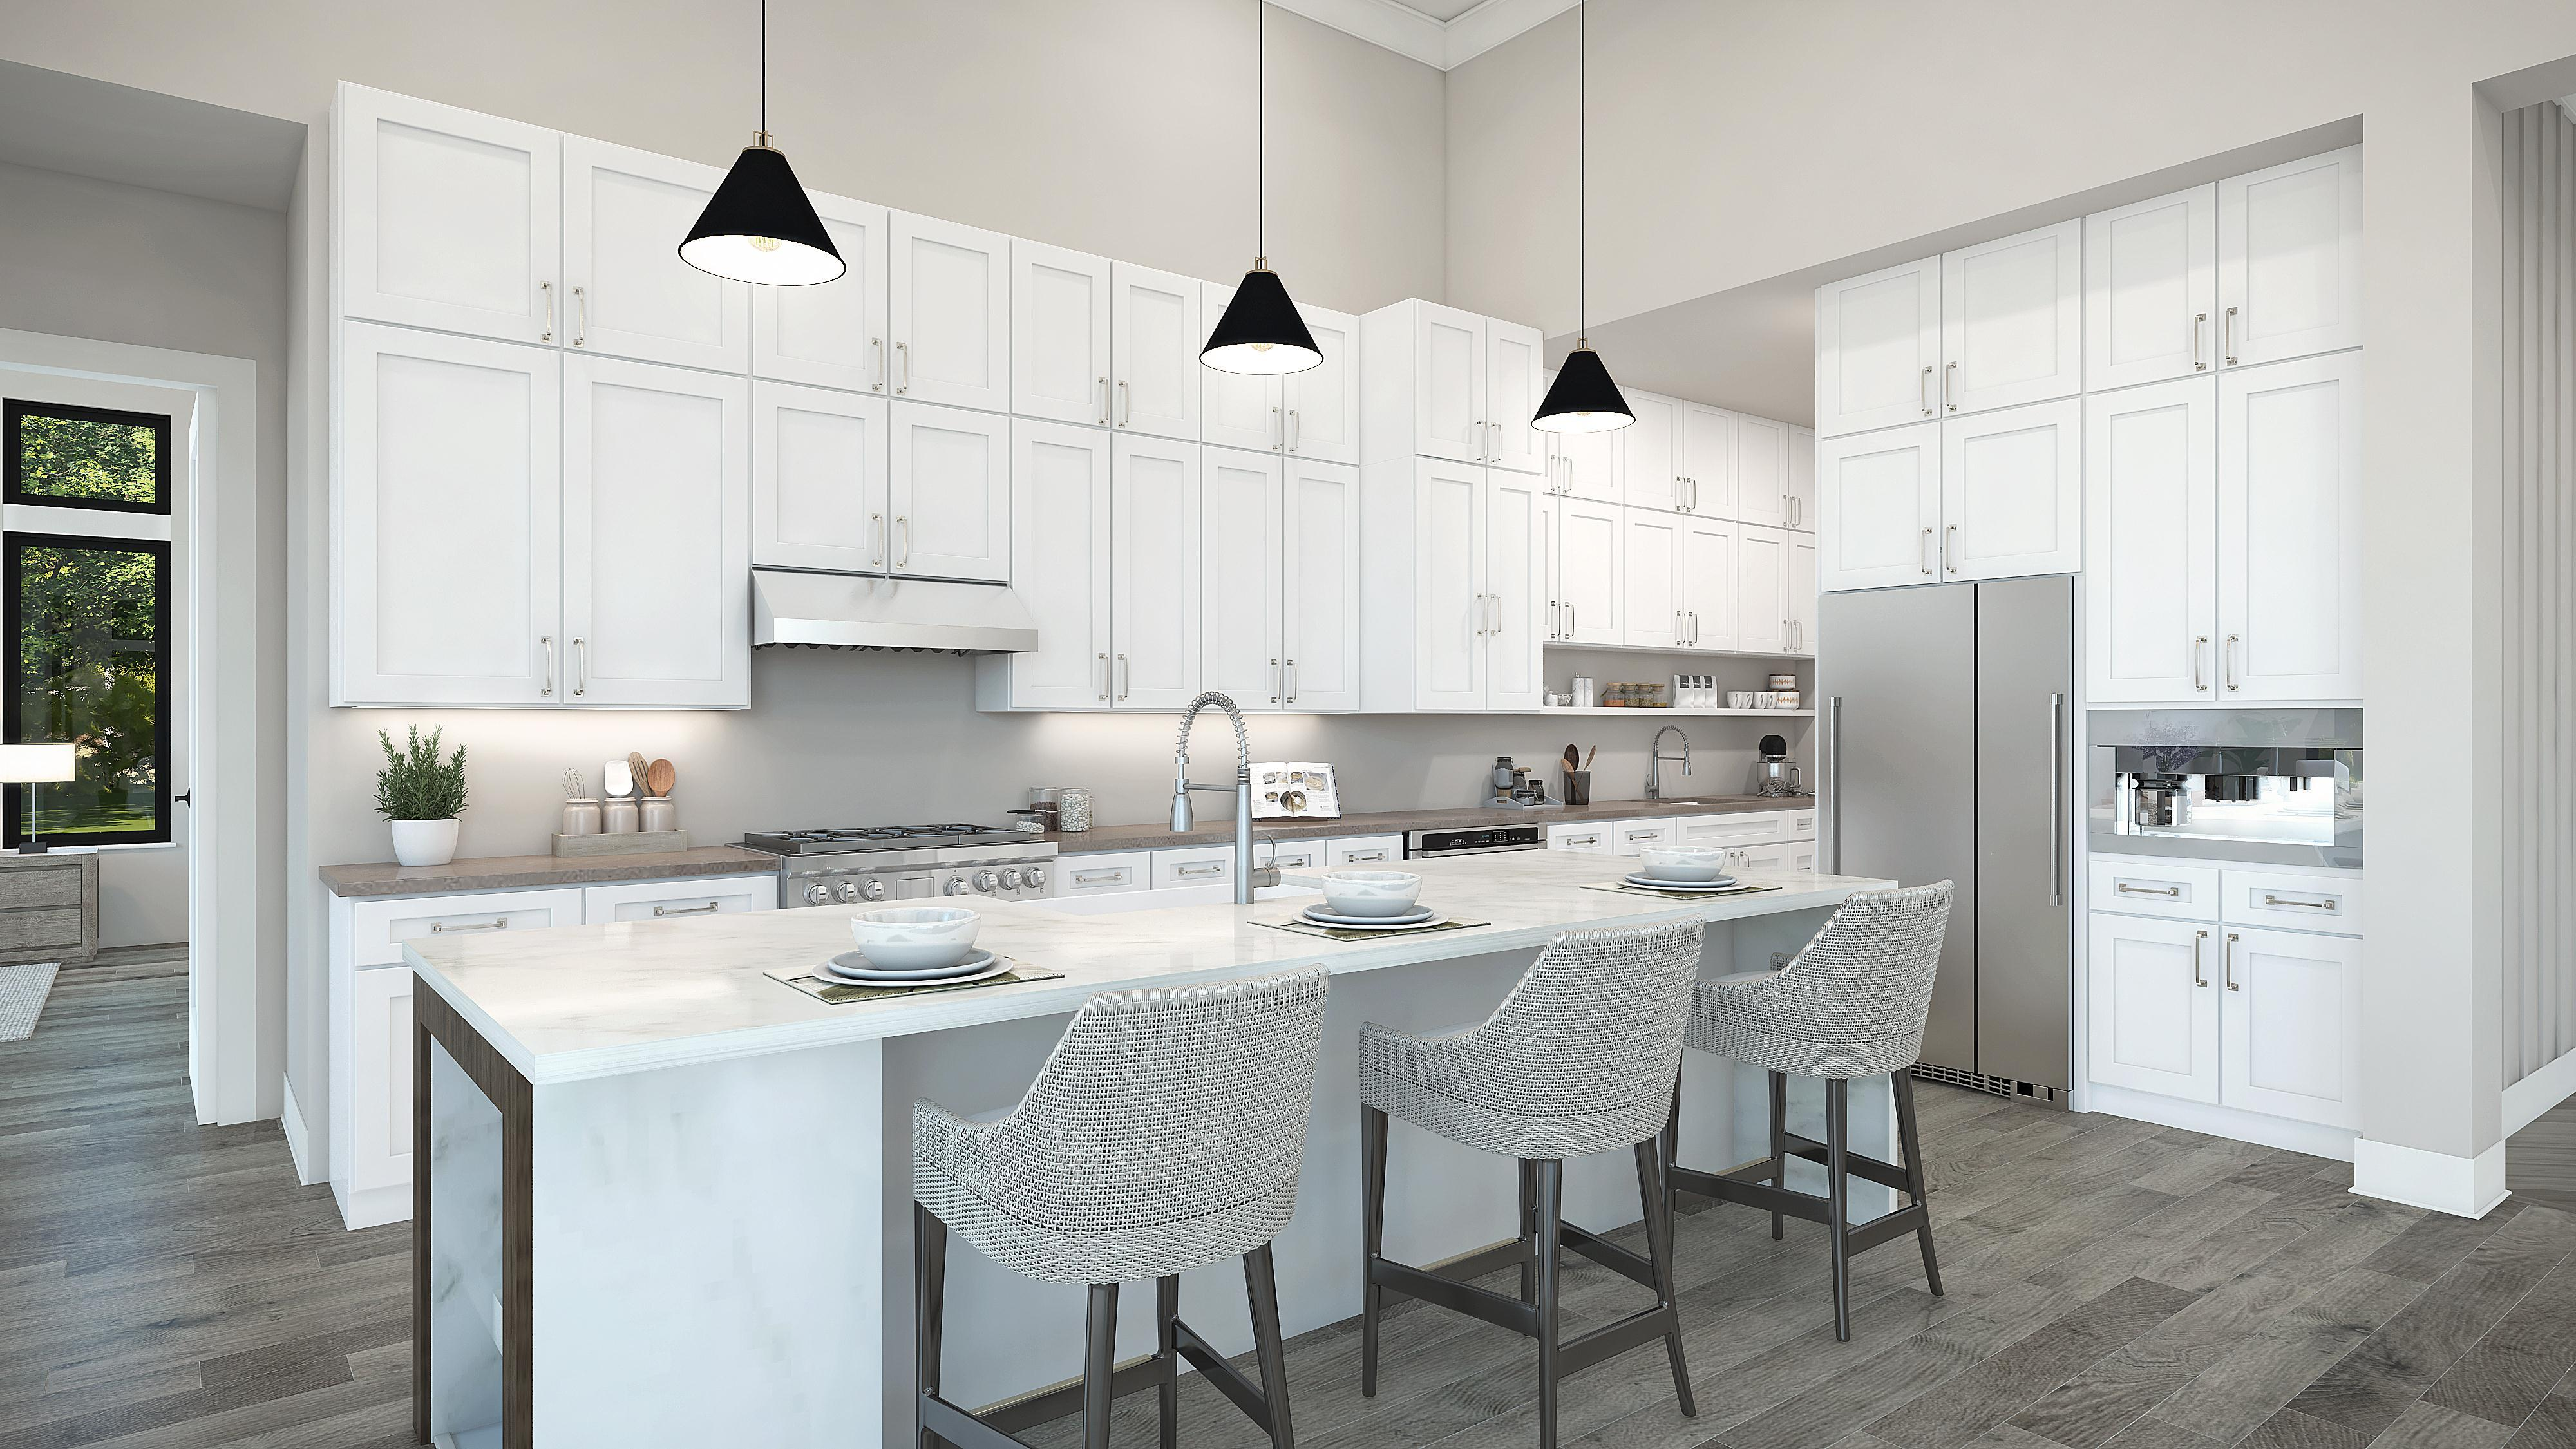 Kitchen featured in the Plan 3-A By Copper Valley  in Stockton-Lodi, CA